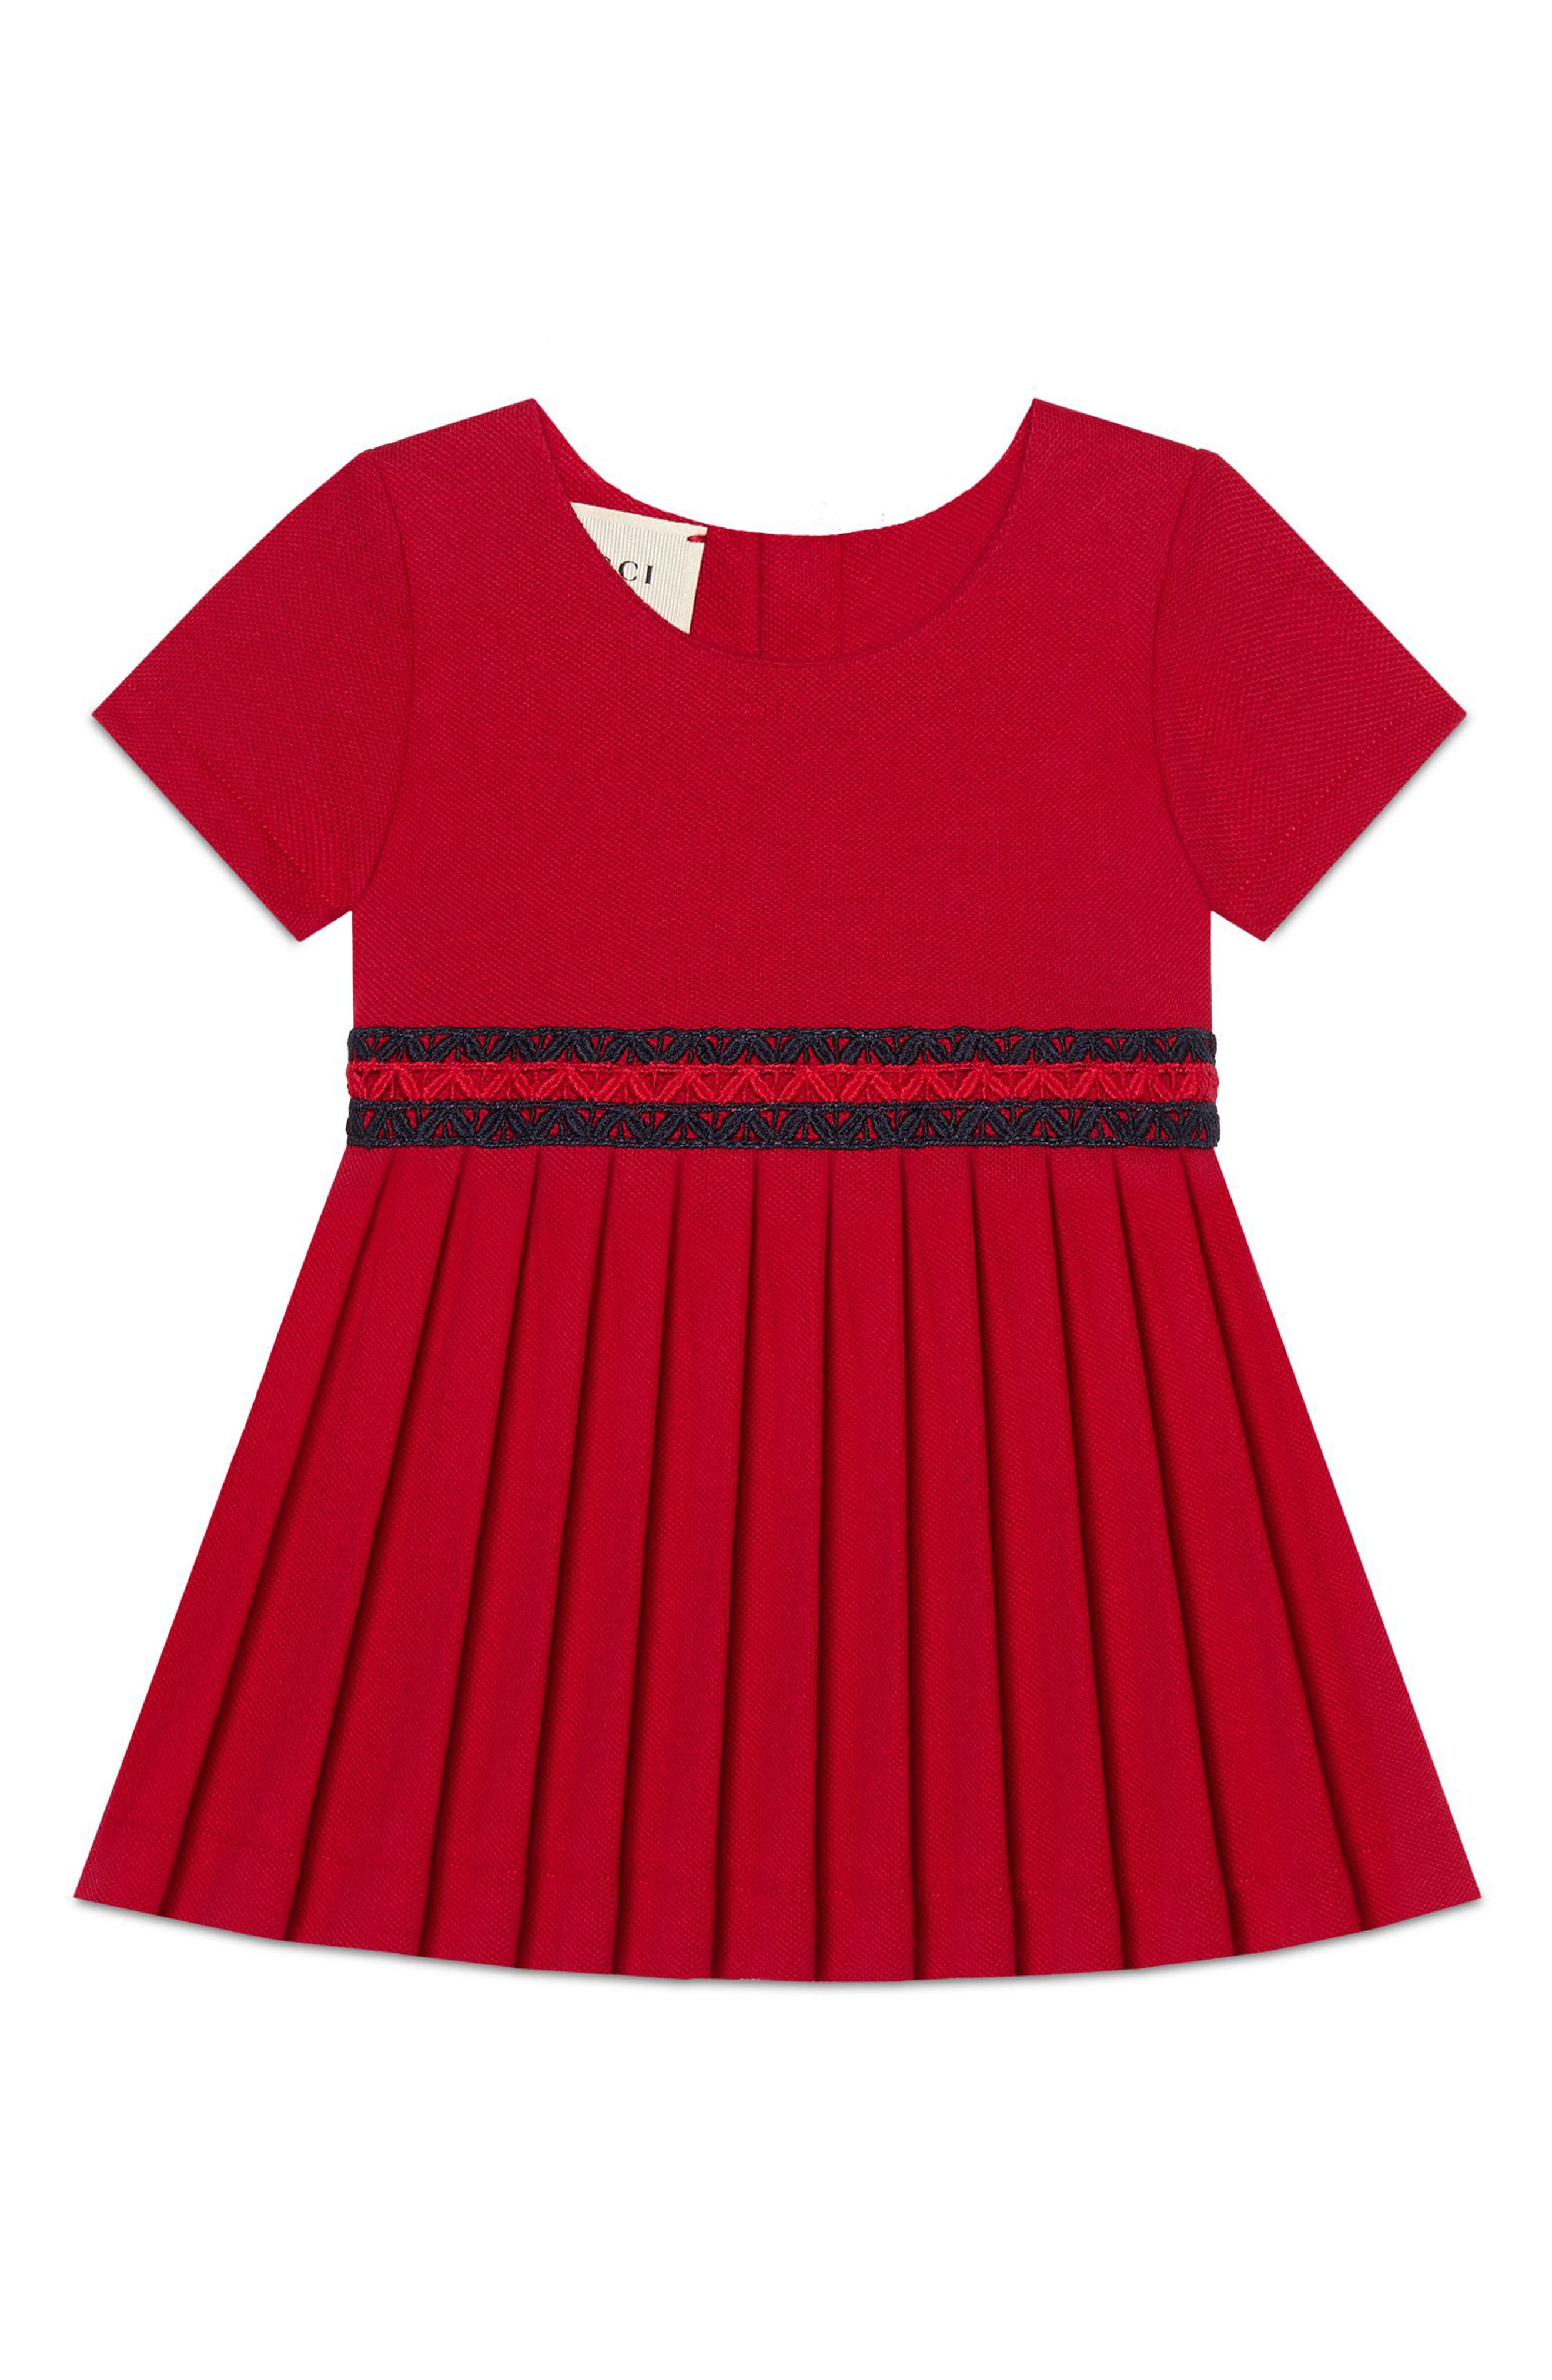 Stretch-Cotton Dress with Pleated Skirt,                             Main thumbnail 1, color,                             Cerese/ Nero